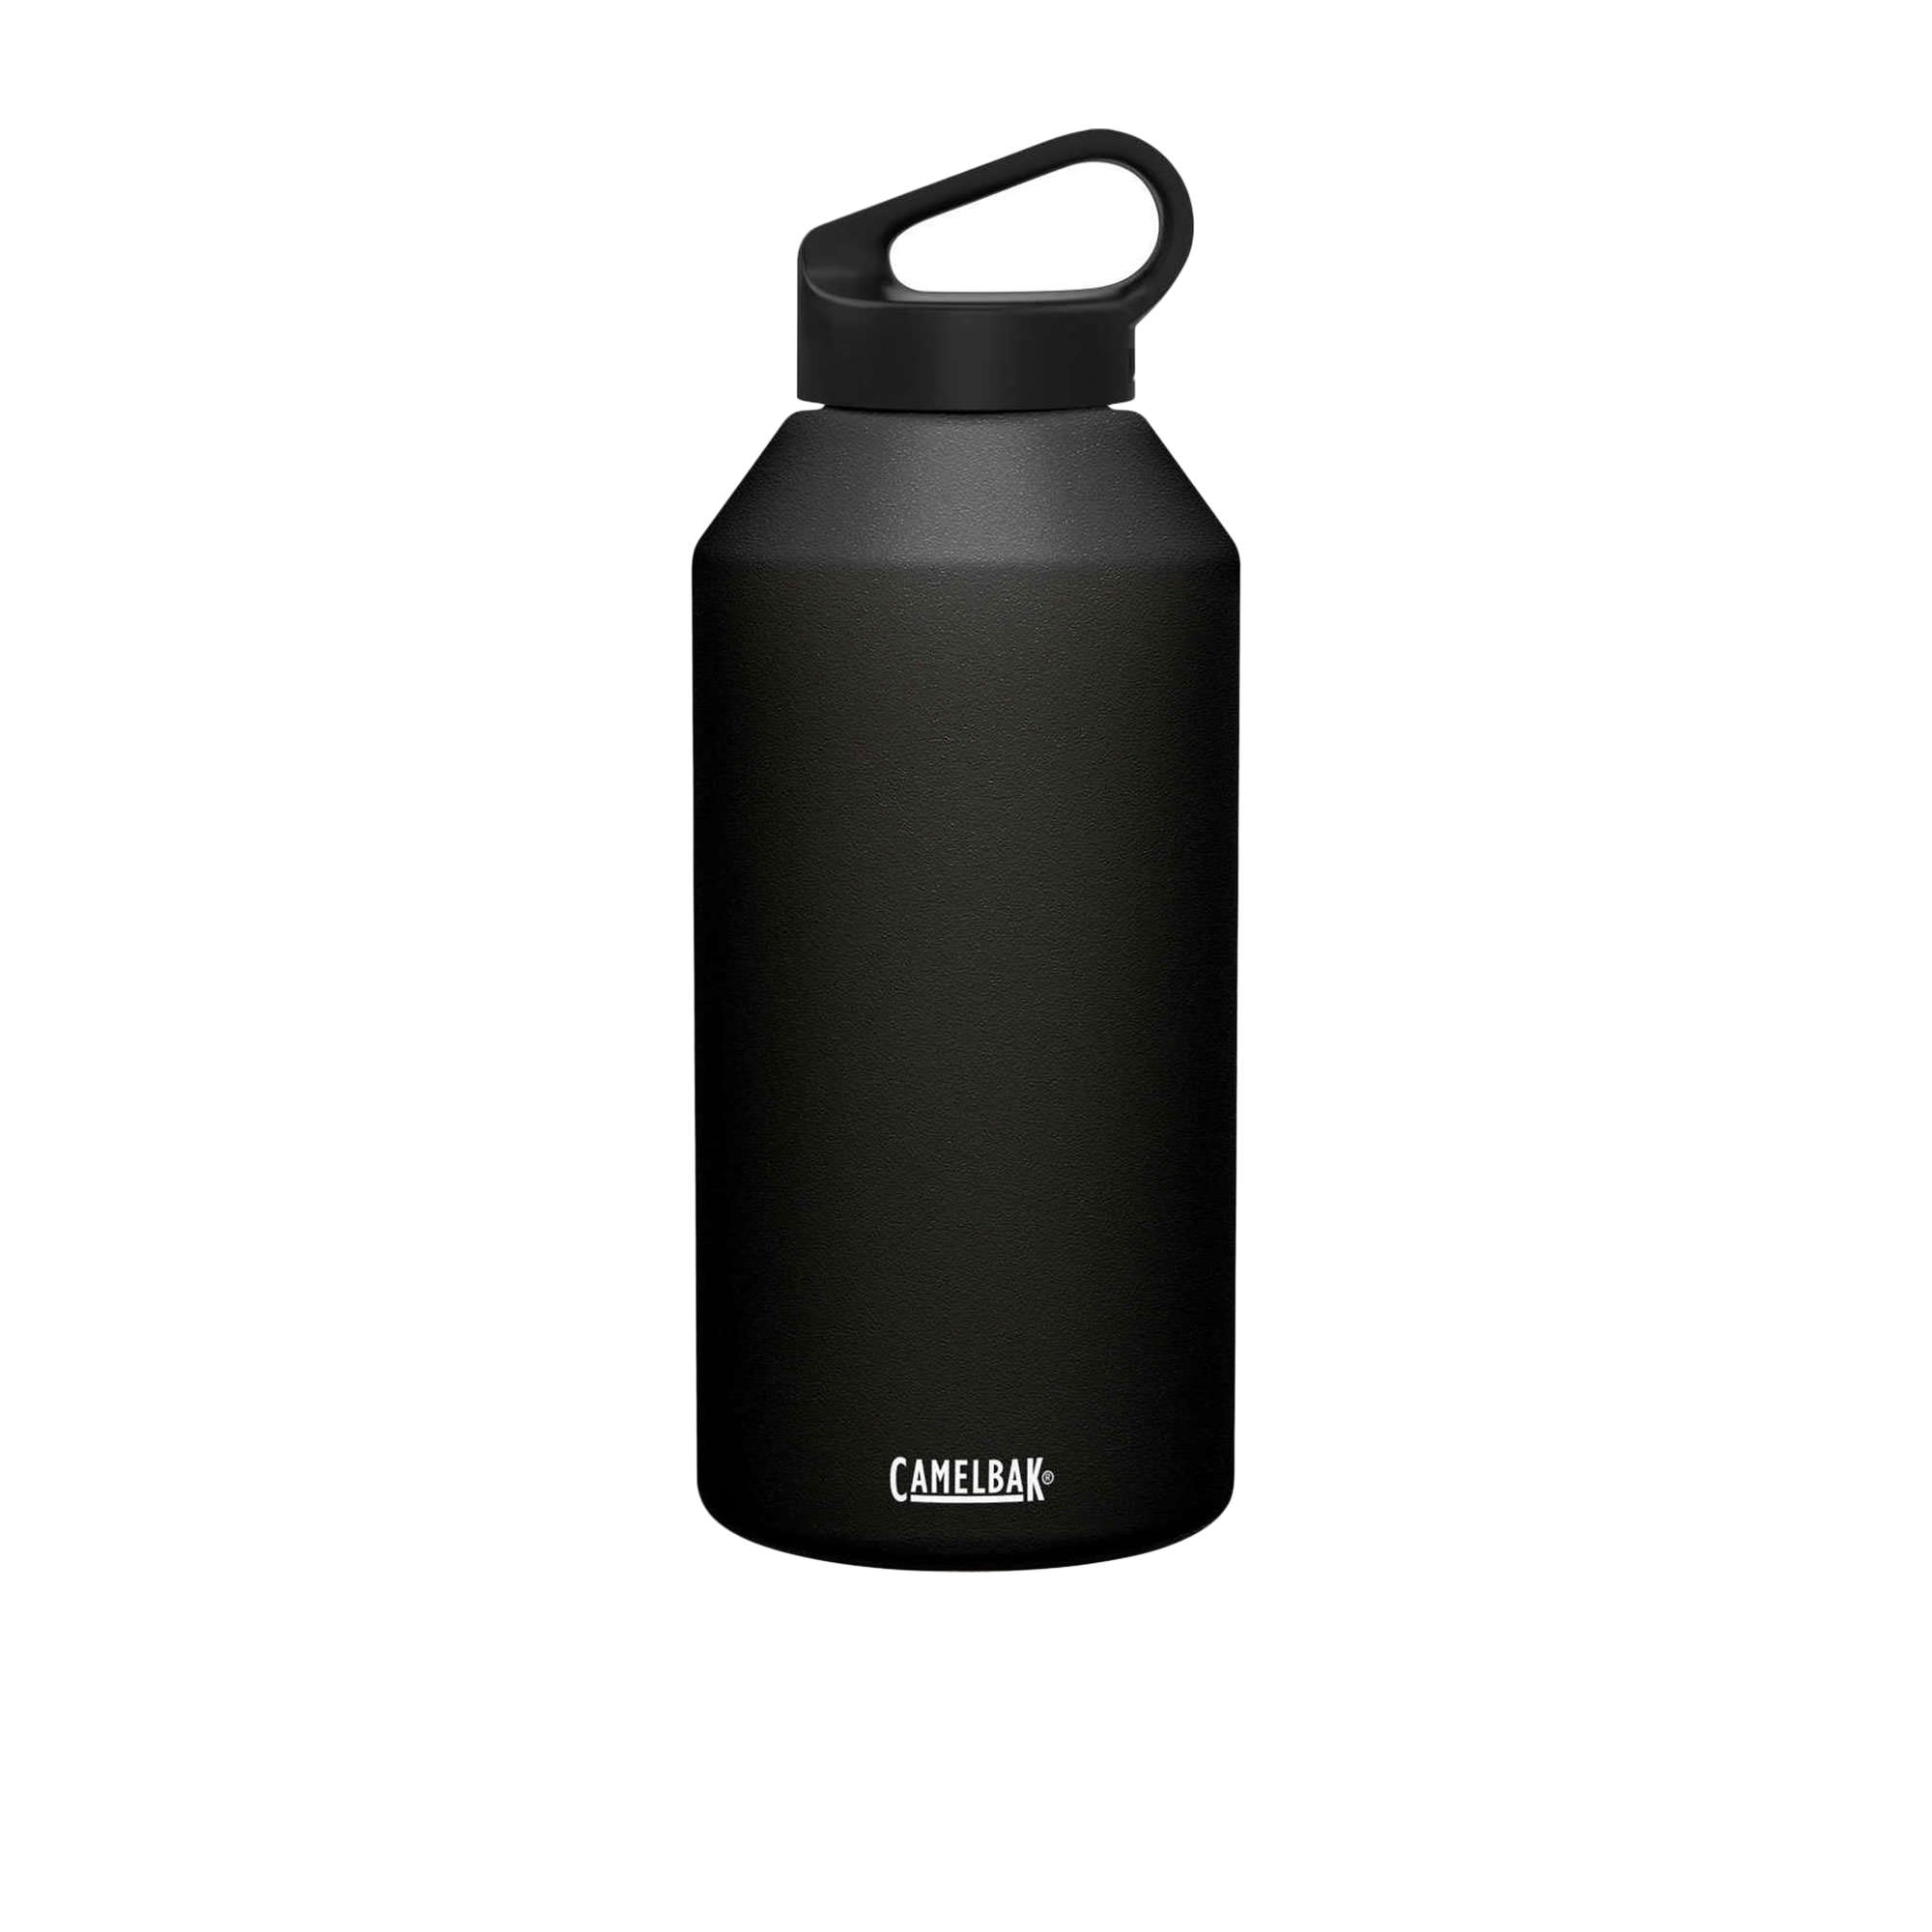 Camelbak Carry Cap Stainless Steel Insulated Drink Bottle 1.9L Black